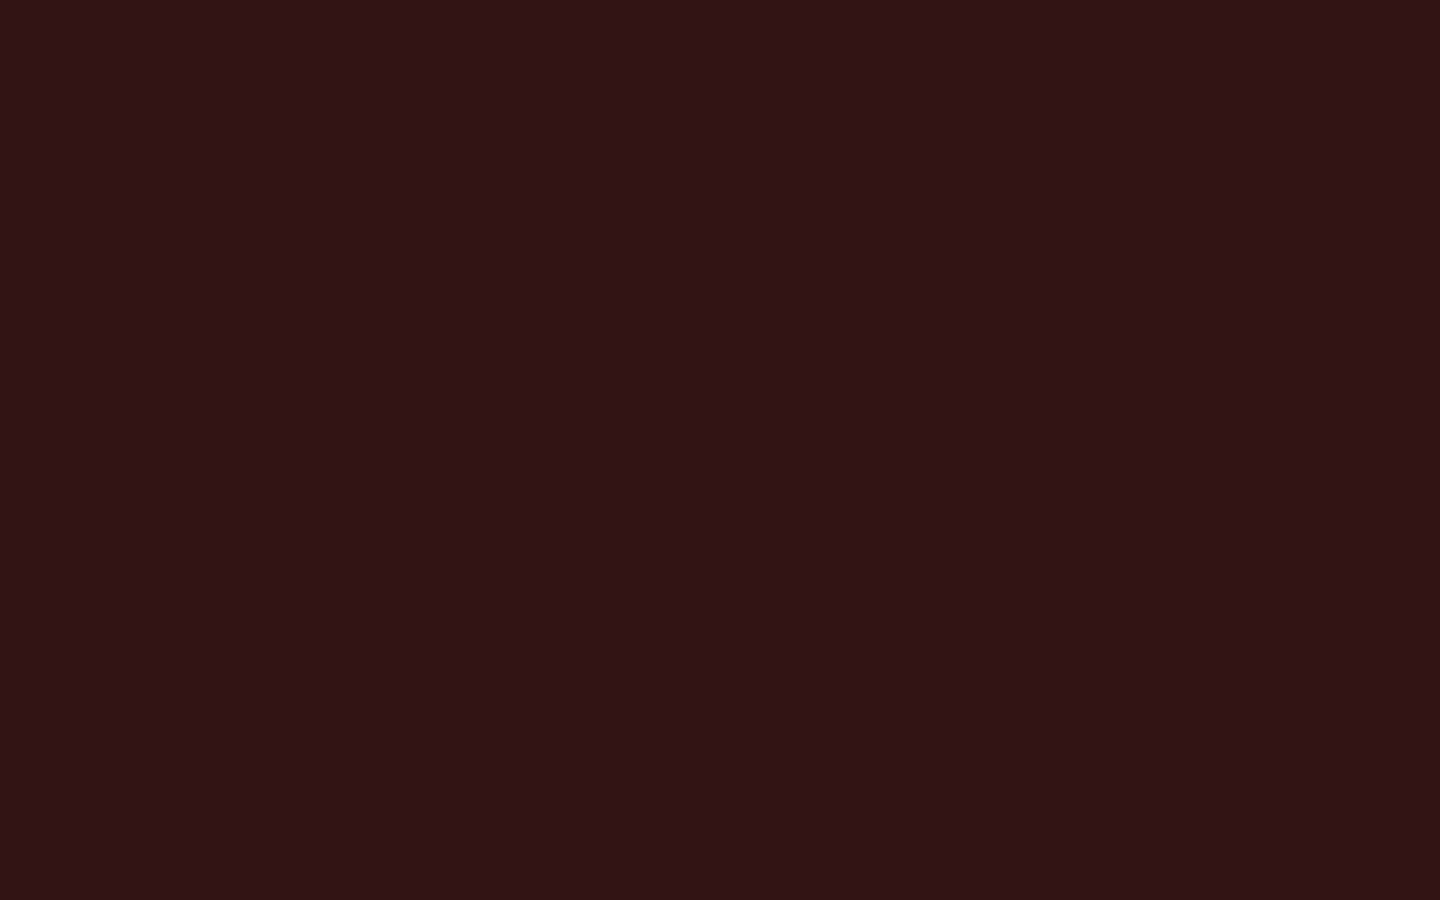 1440x900 Seal Brown Solid Color Background